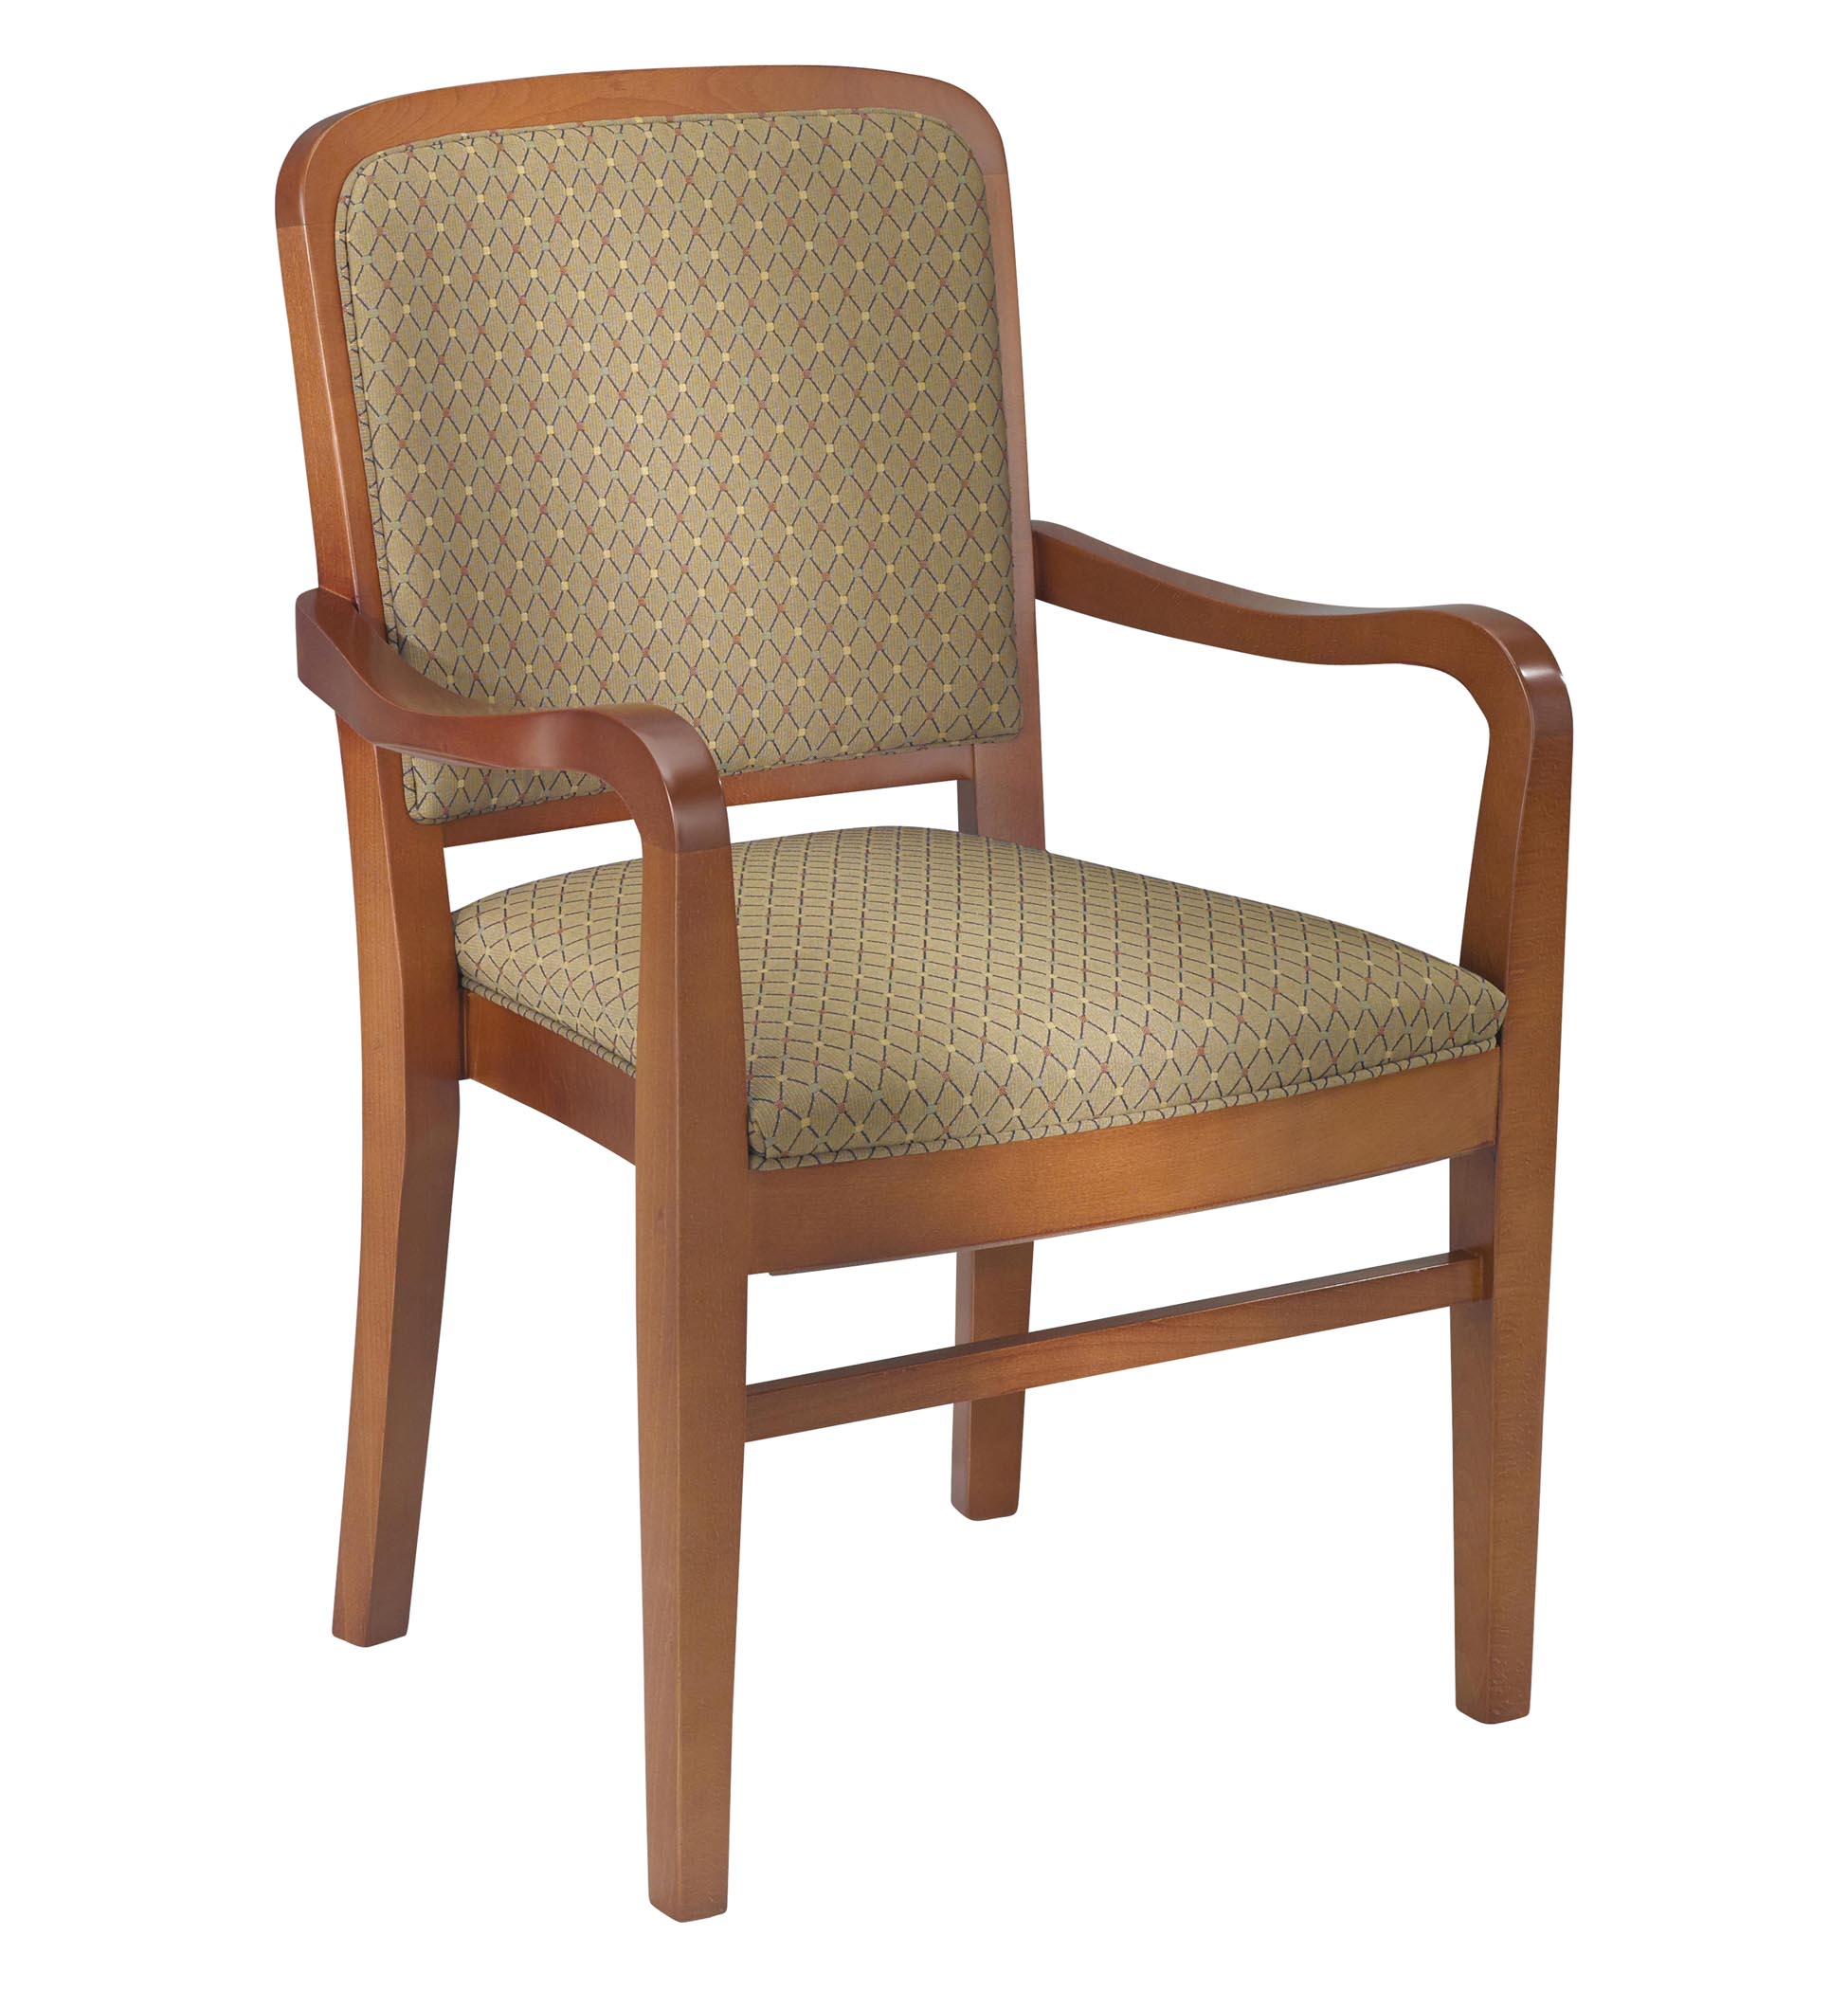 Wood Arm Chair 2760 Stacking Wood Arm Chair